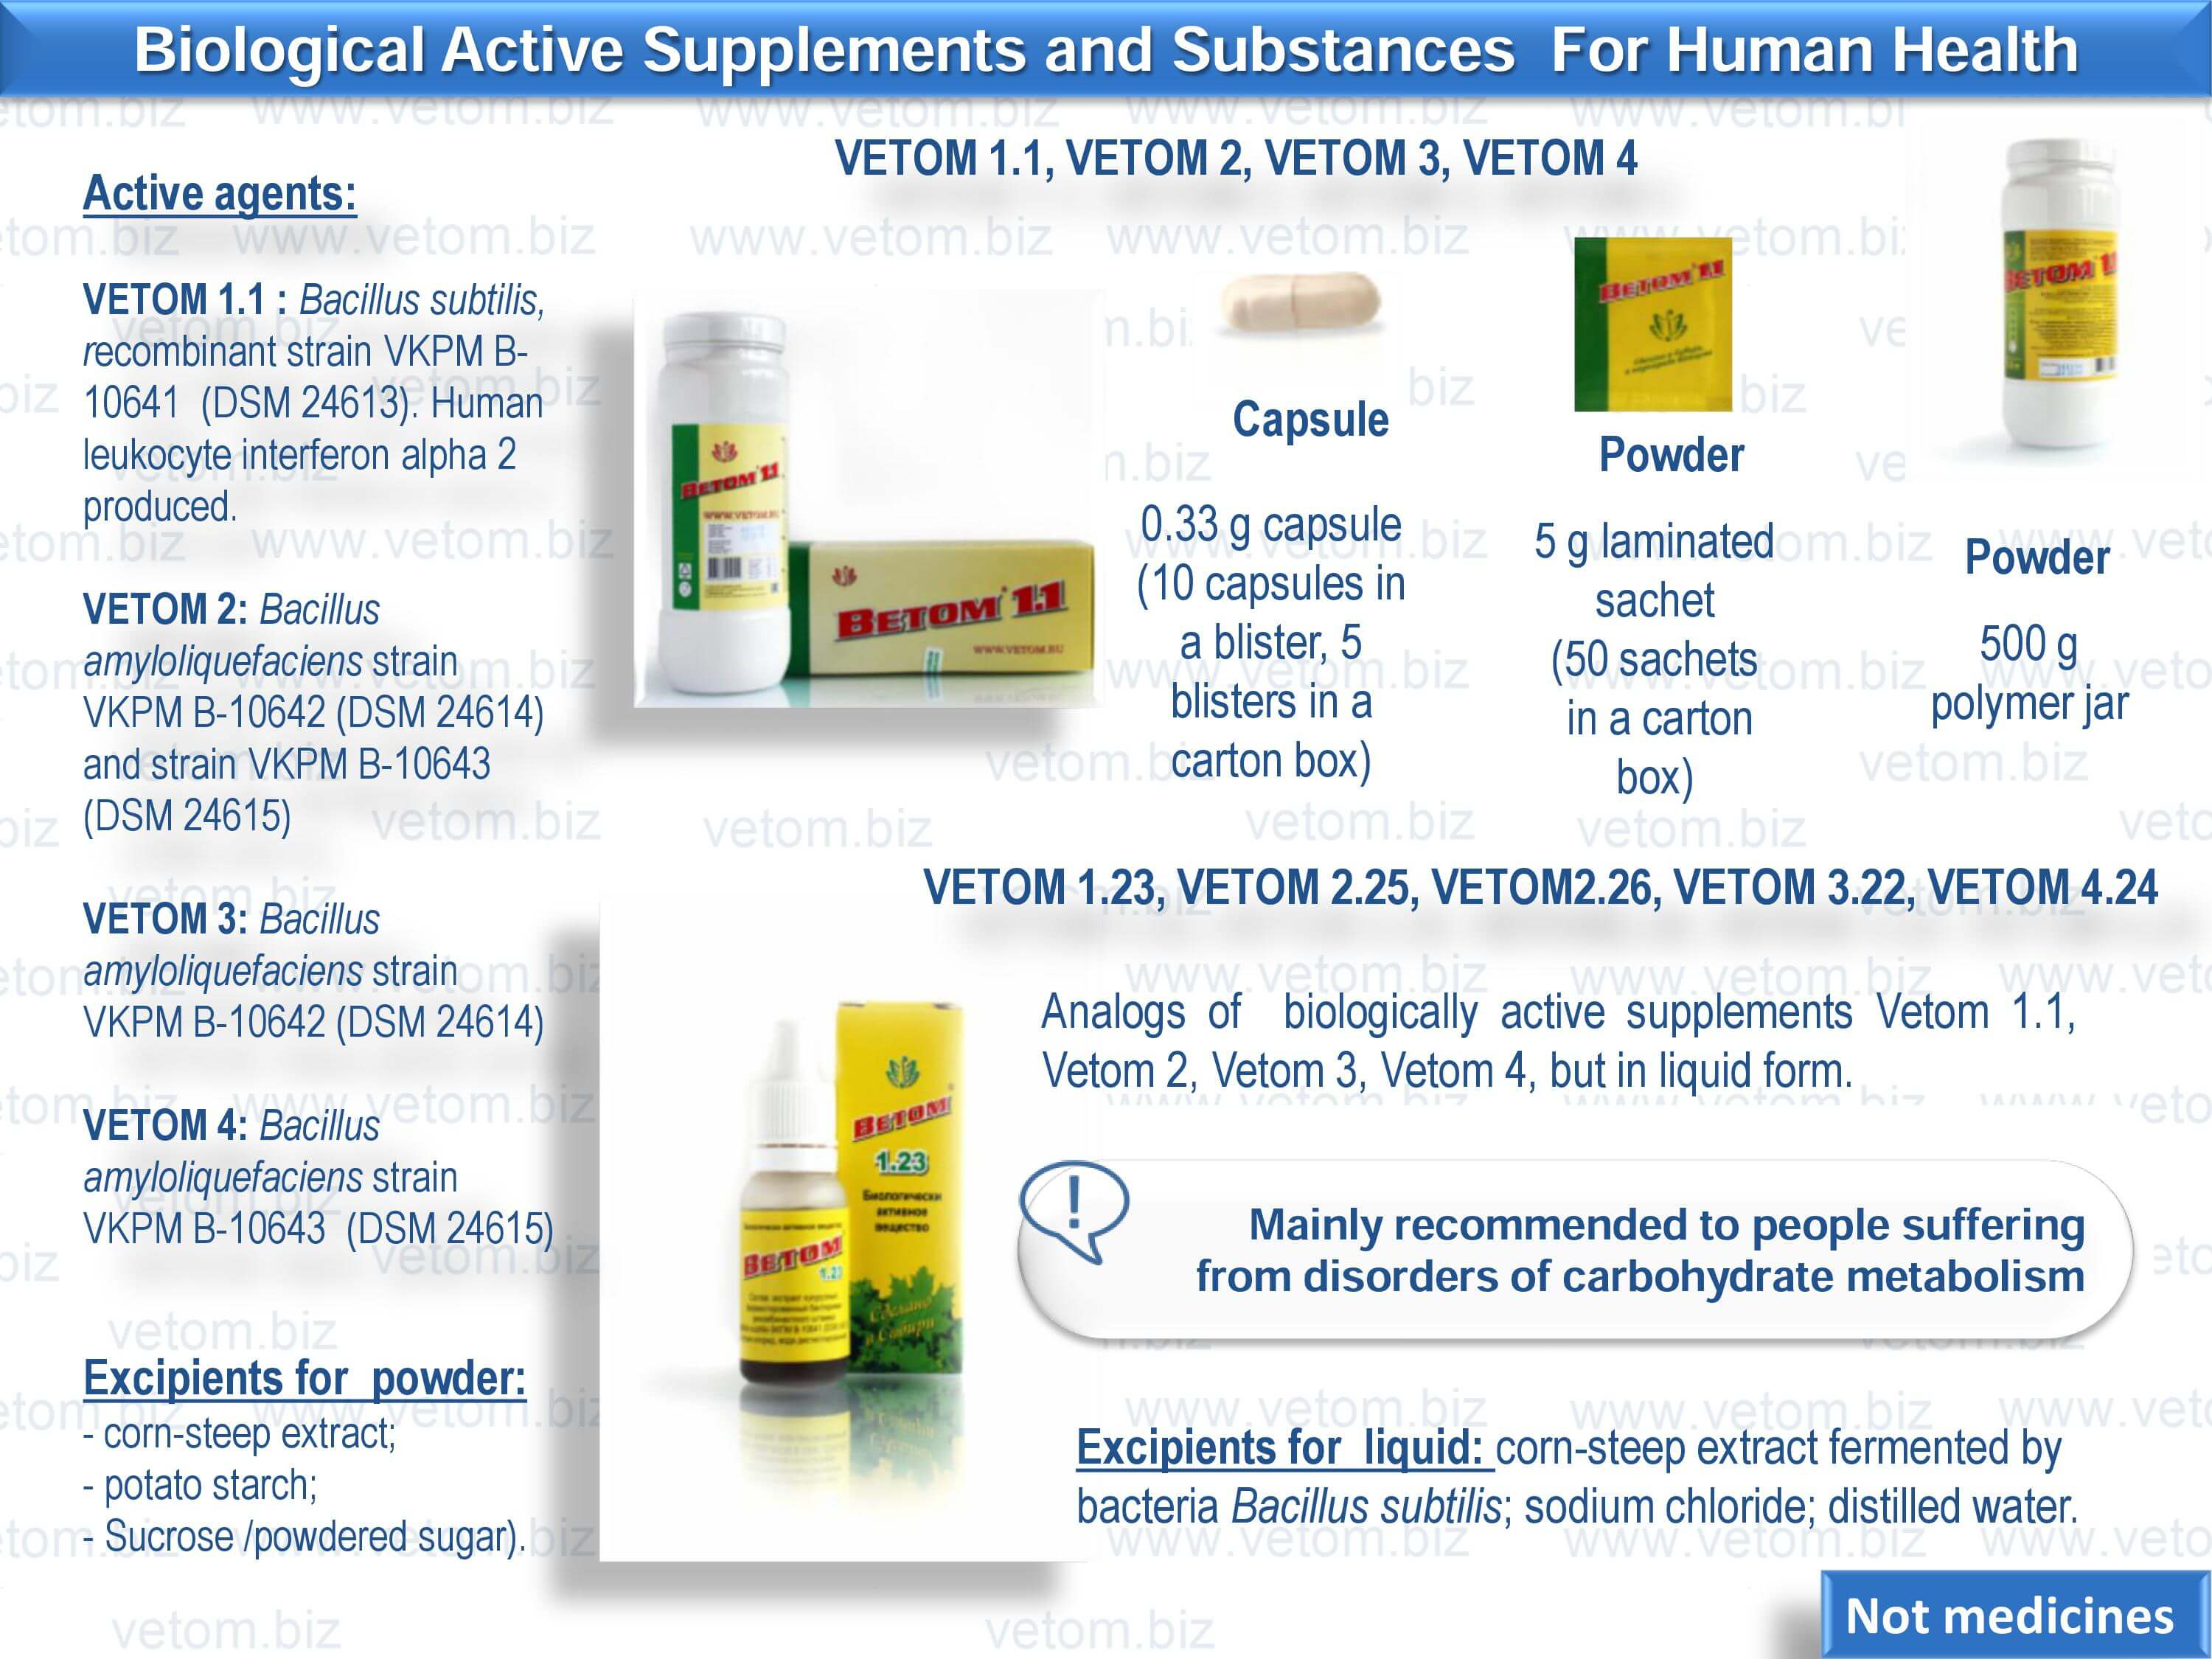 Biologically active supplements and substances for human health - Vetom 1.1, Vetom 2, Vetom 3, Vetom 4, Vetom 1.23, Vetom 2.25, Vetom 2.26, Vetom 3.22, Vetom 4.24